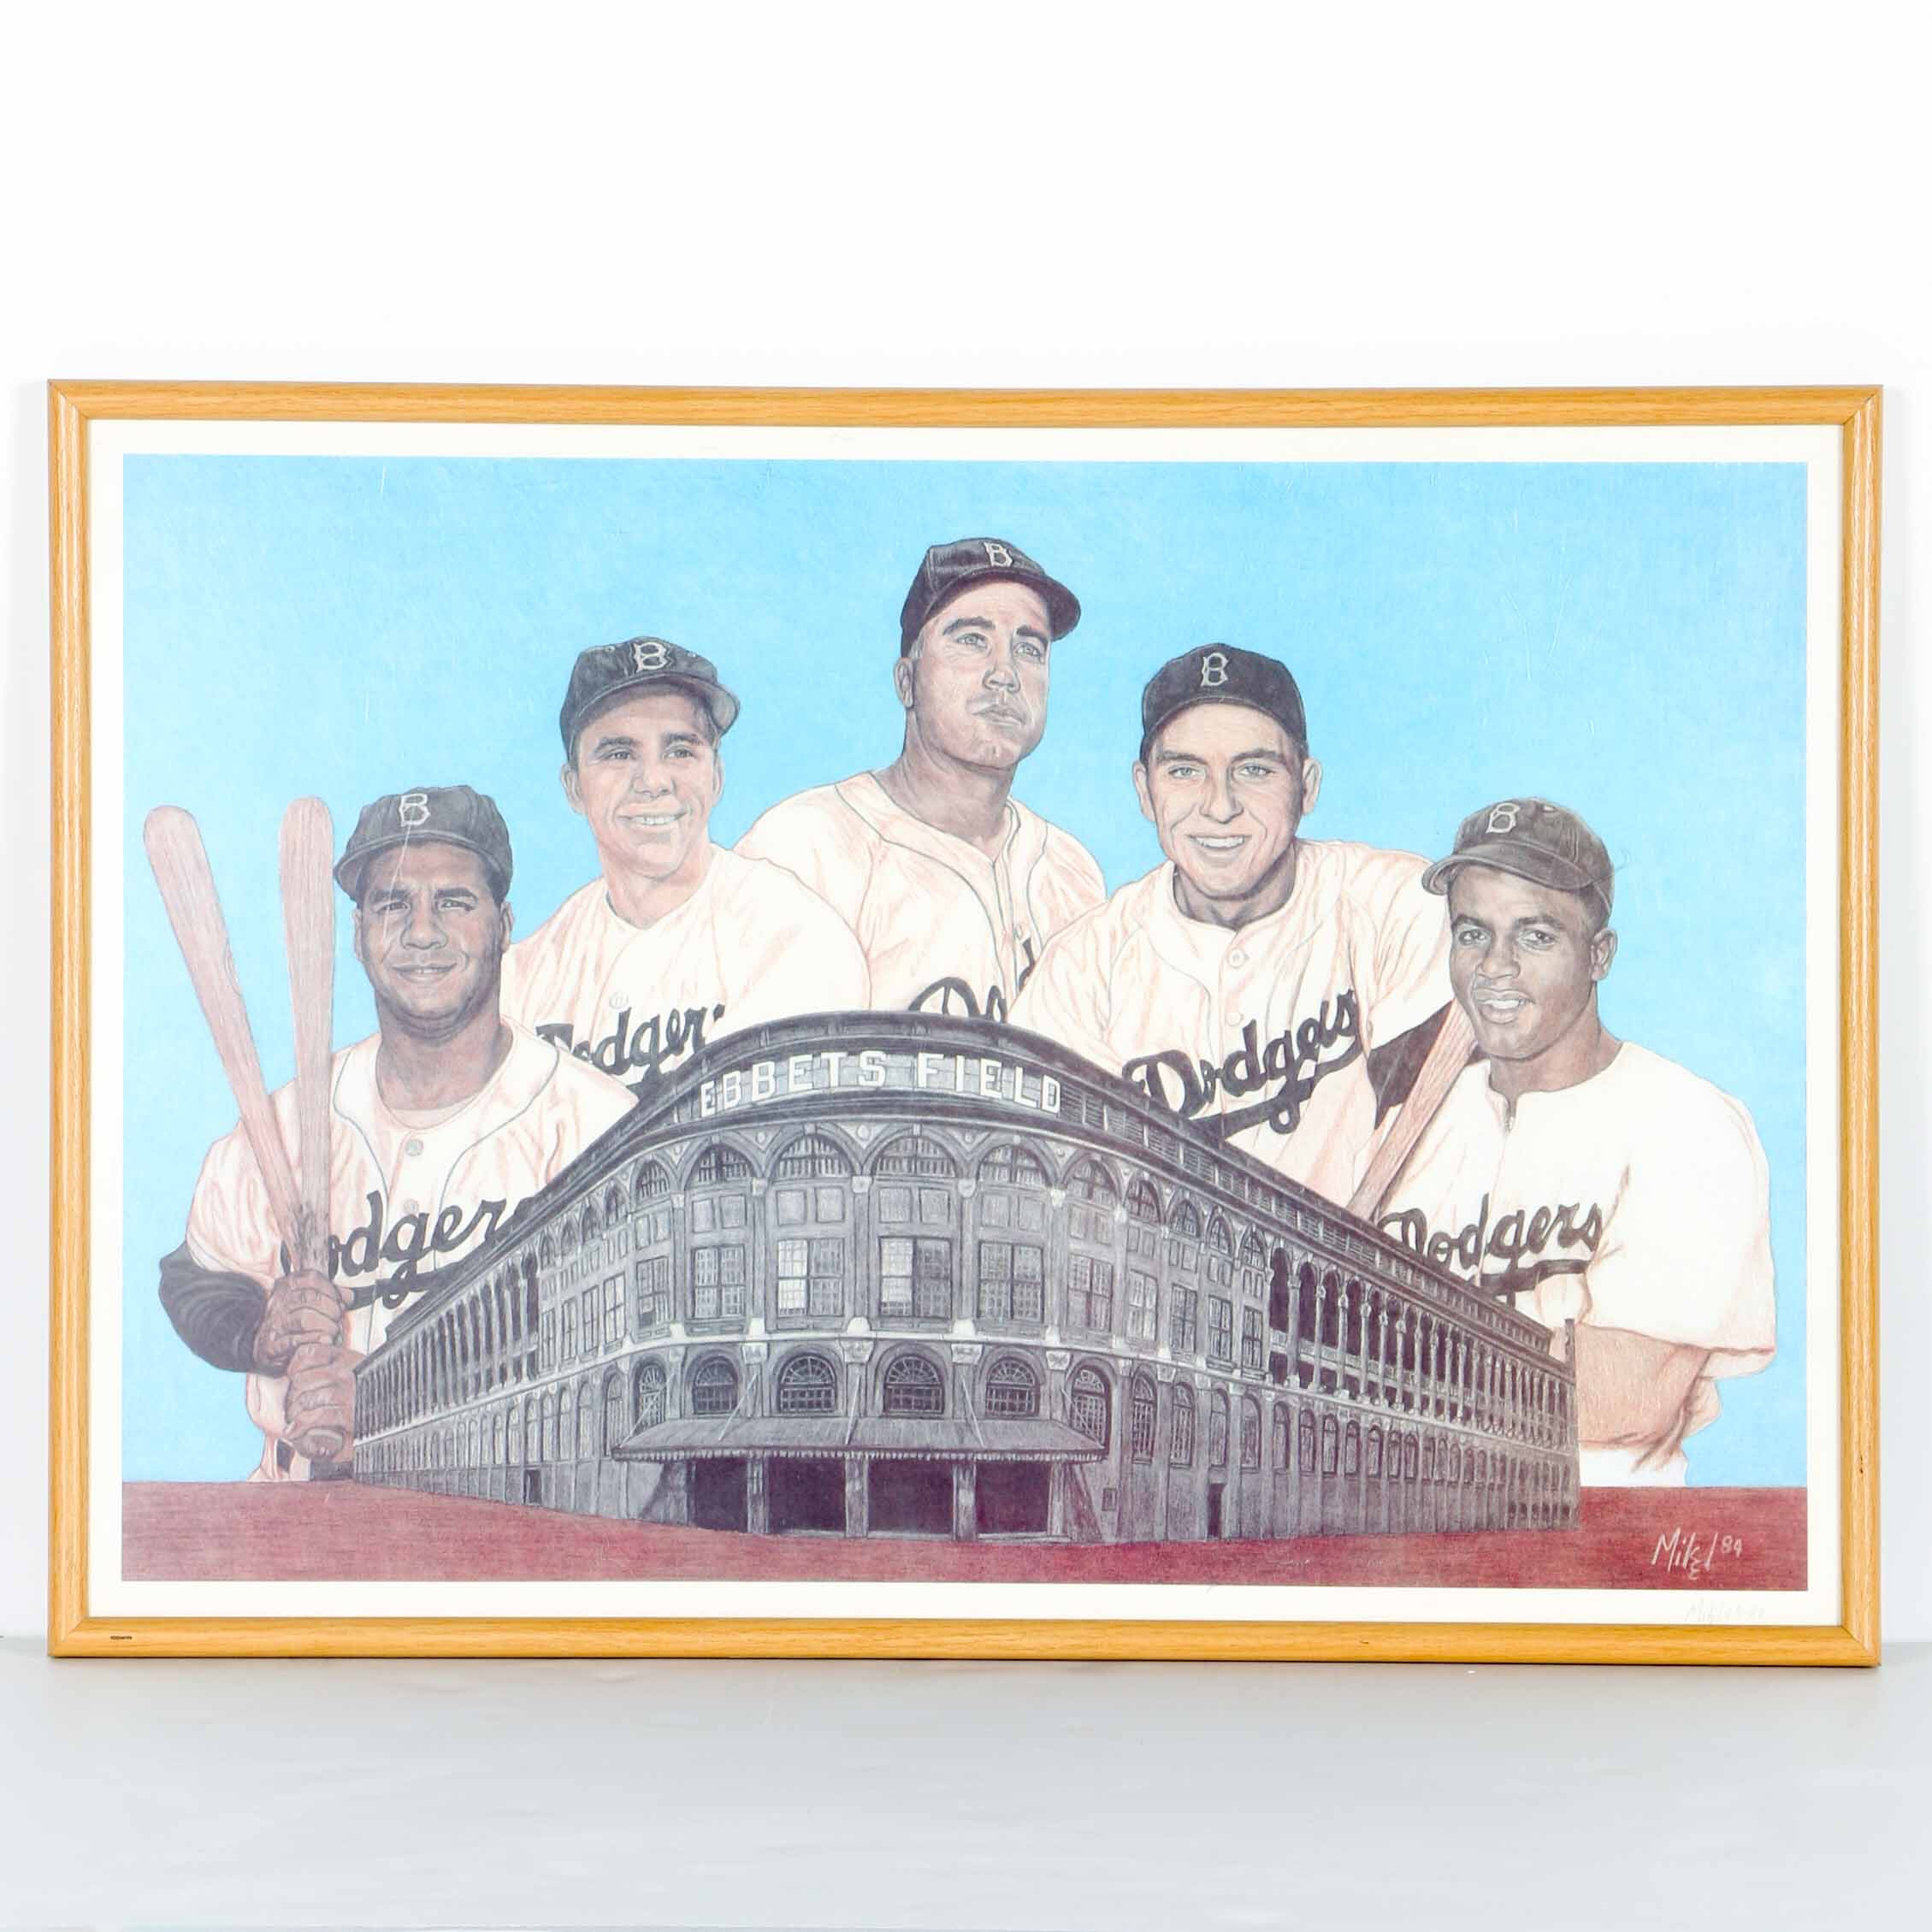 Mike Signed Offset Lithograph of the 1955 Brooklyn Dodgers